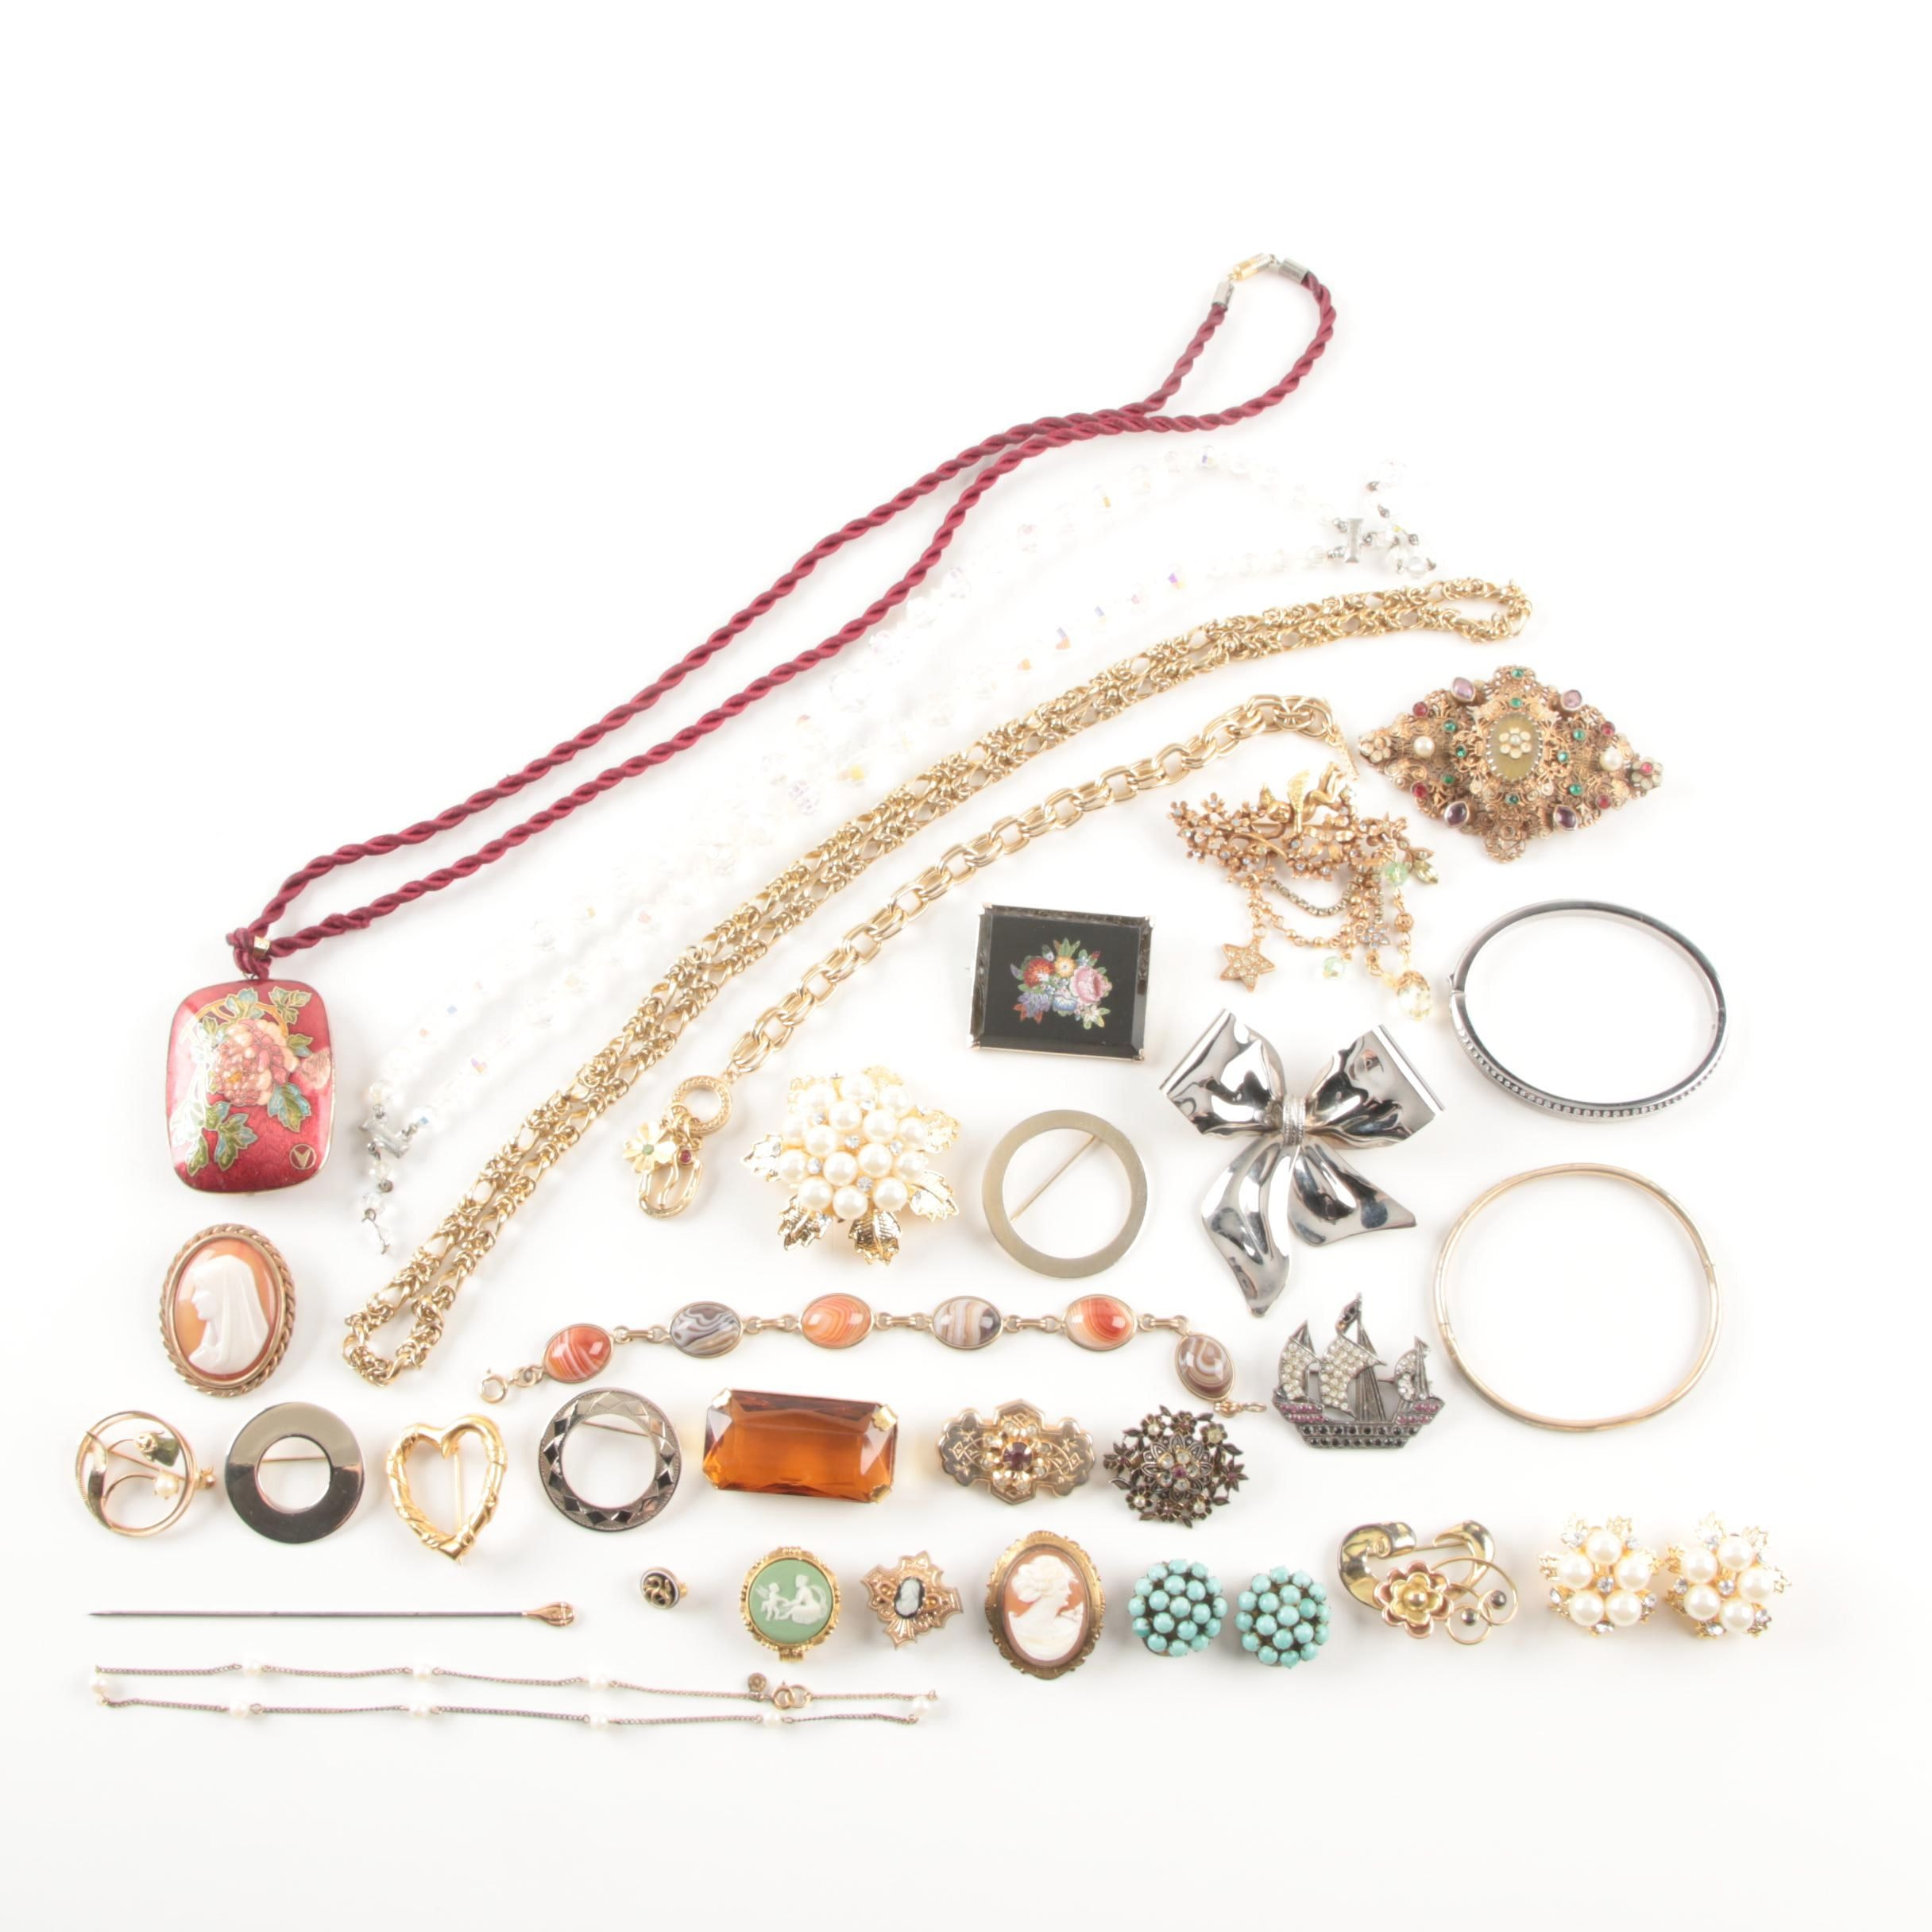 Assortment of Costume Jewelry Including a Skaggen and Kirks Folly